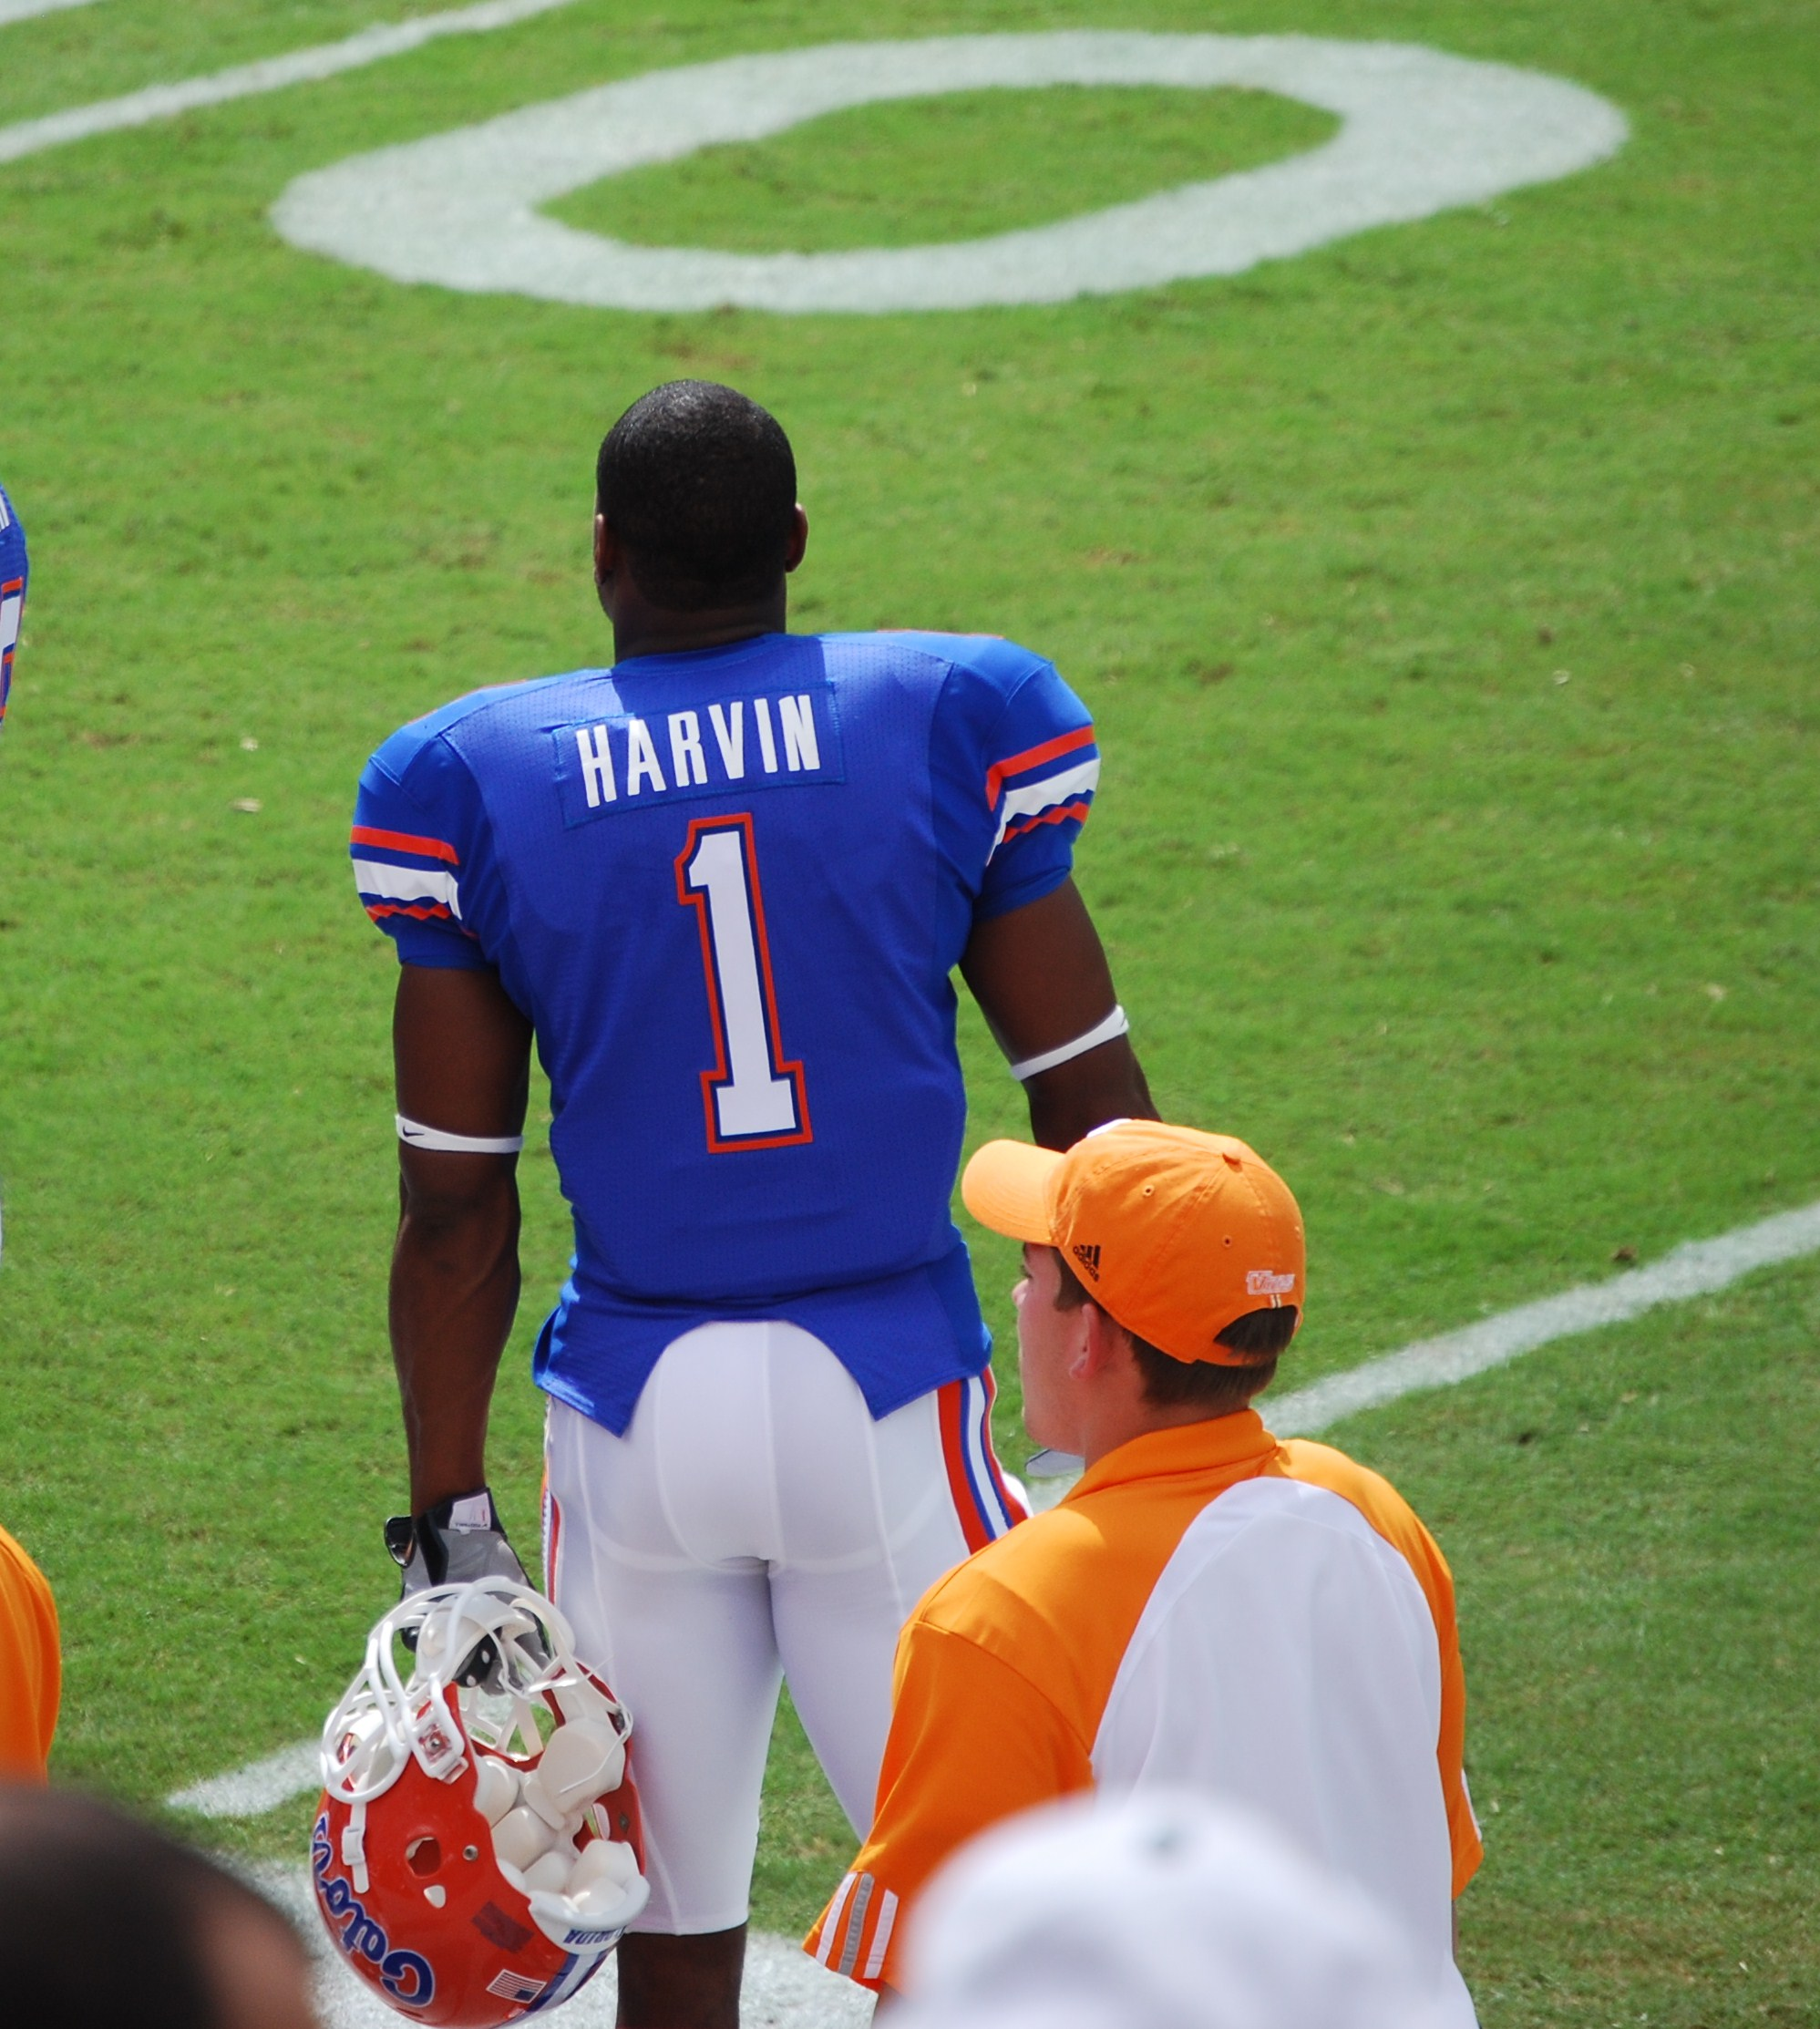 File:PERCY HARVIN.jpg - Wikimedia Commons